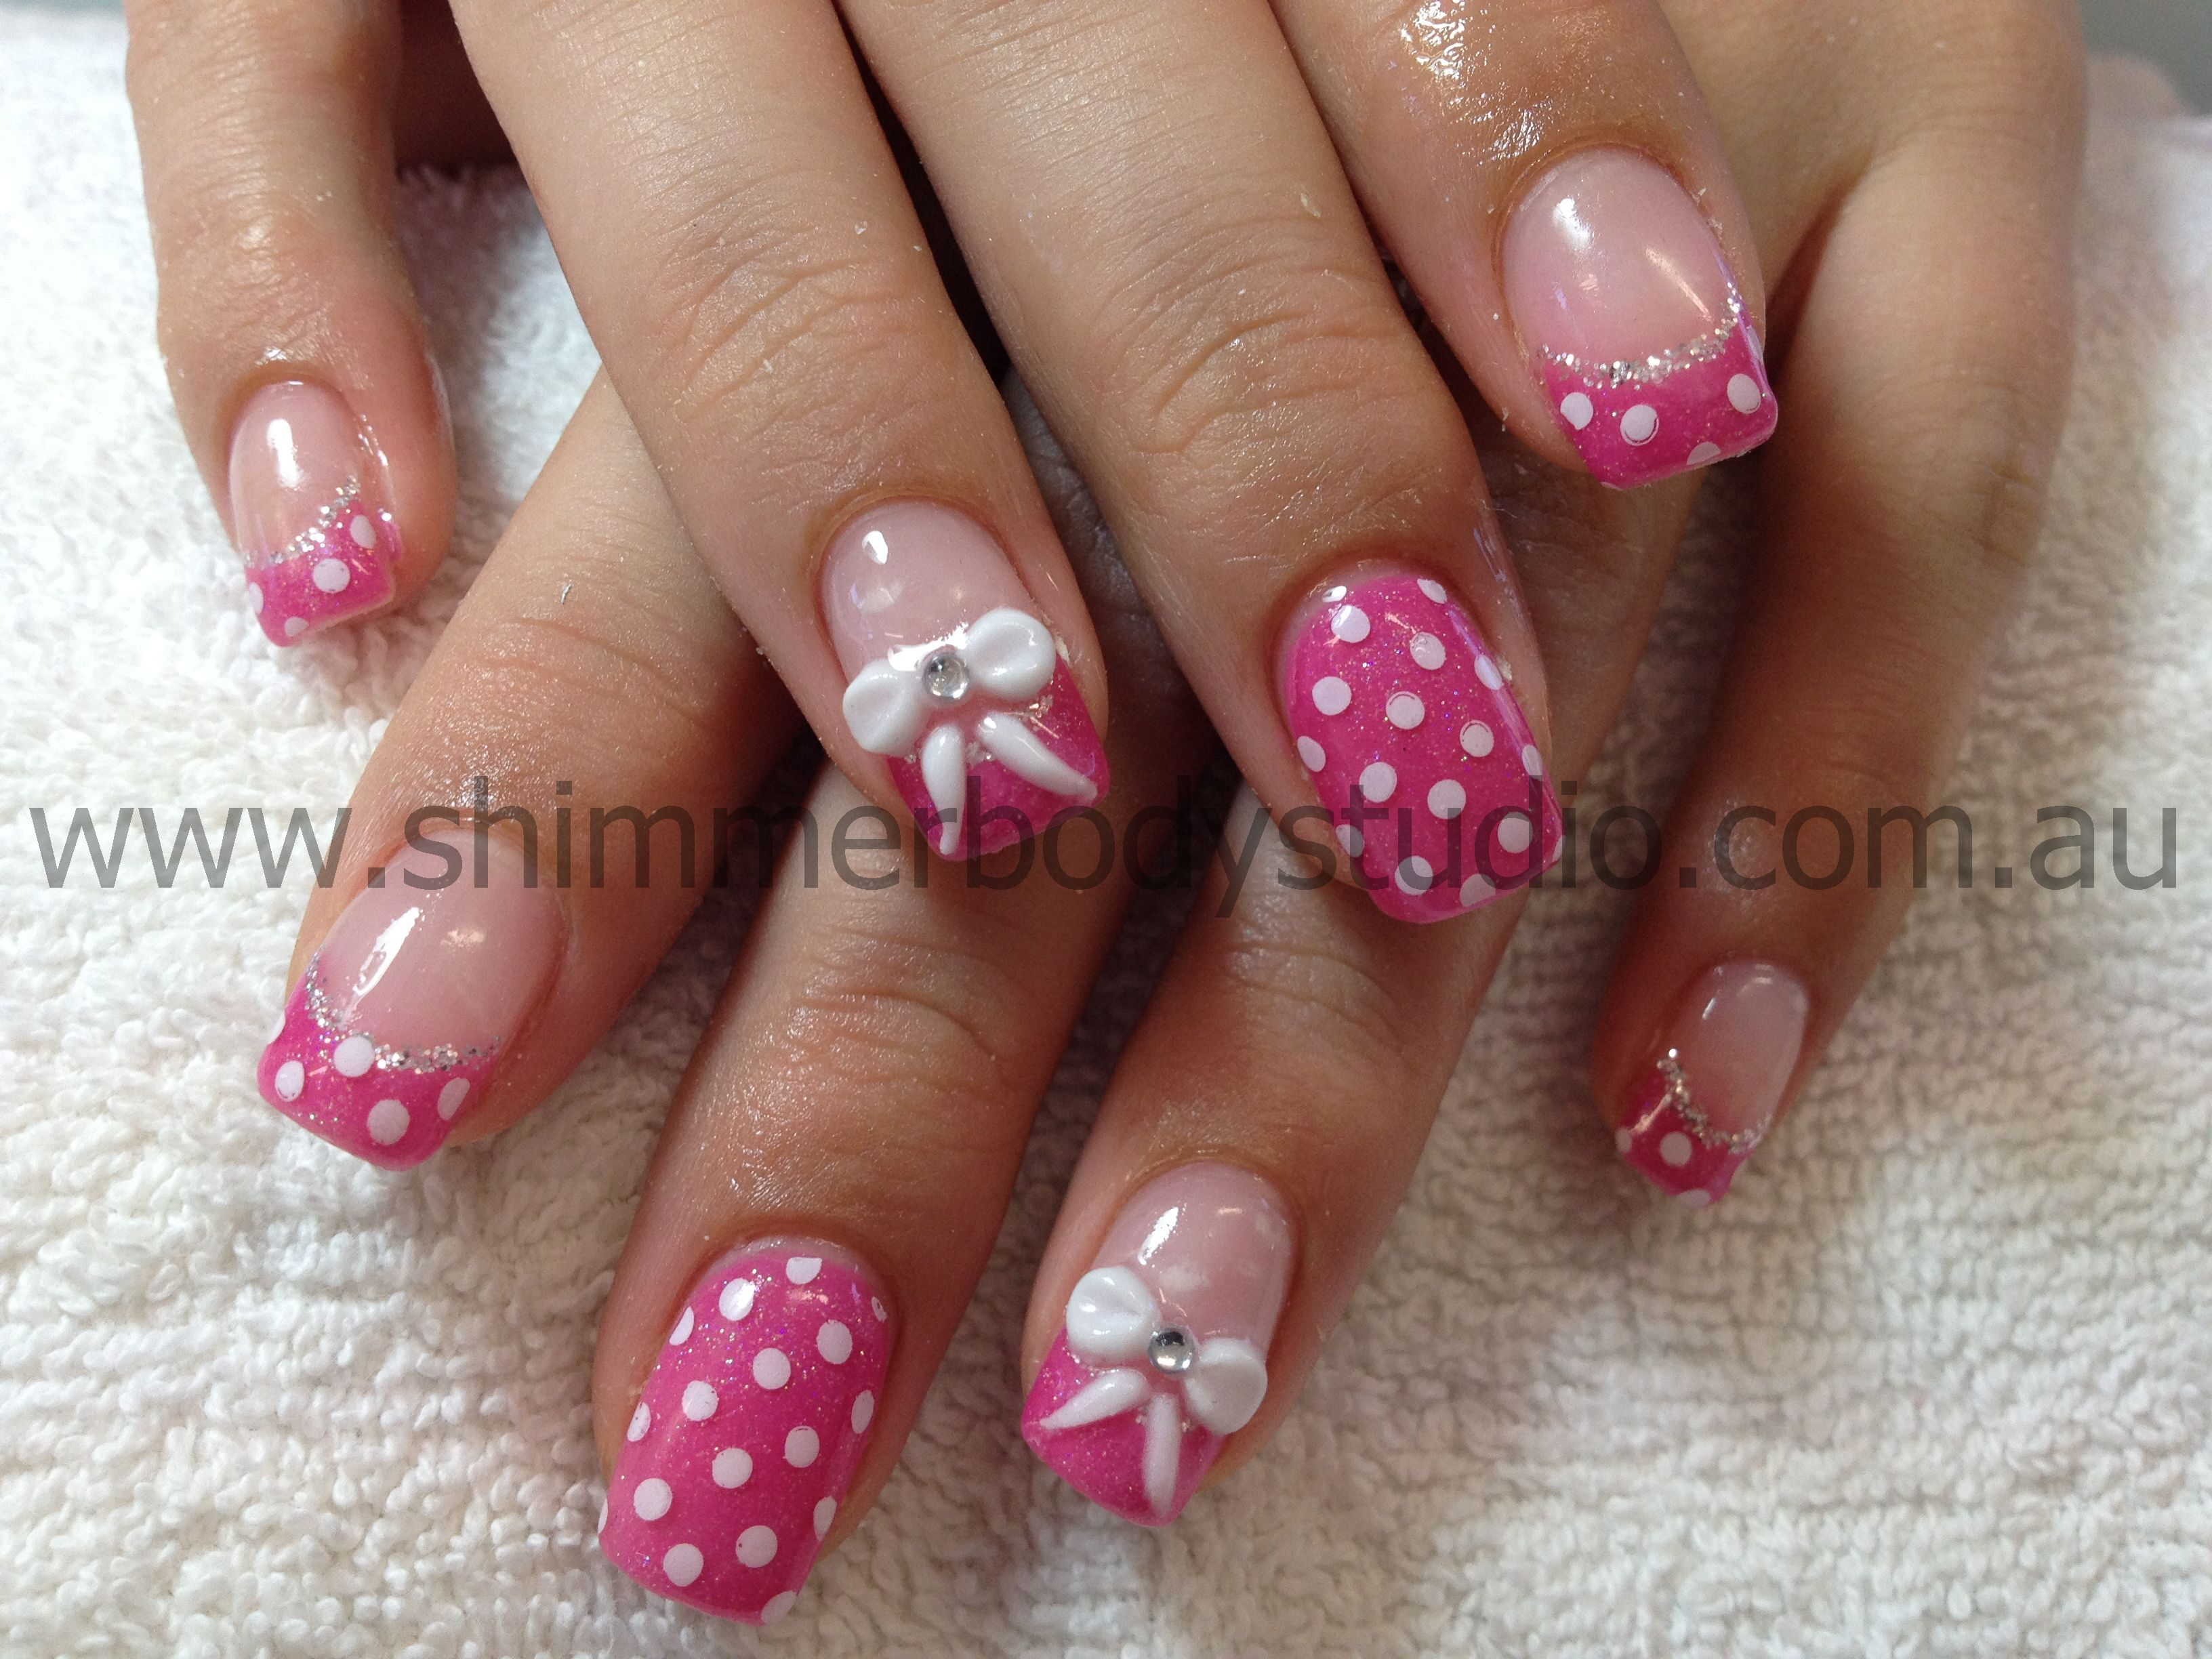 Gel nails, feature nail, pink nails, polkadot nails, bows nail art, 3d sculpted nail art by Shimmer Body Studio.